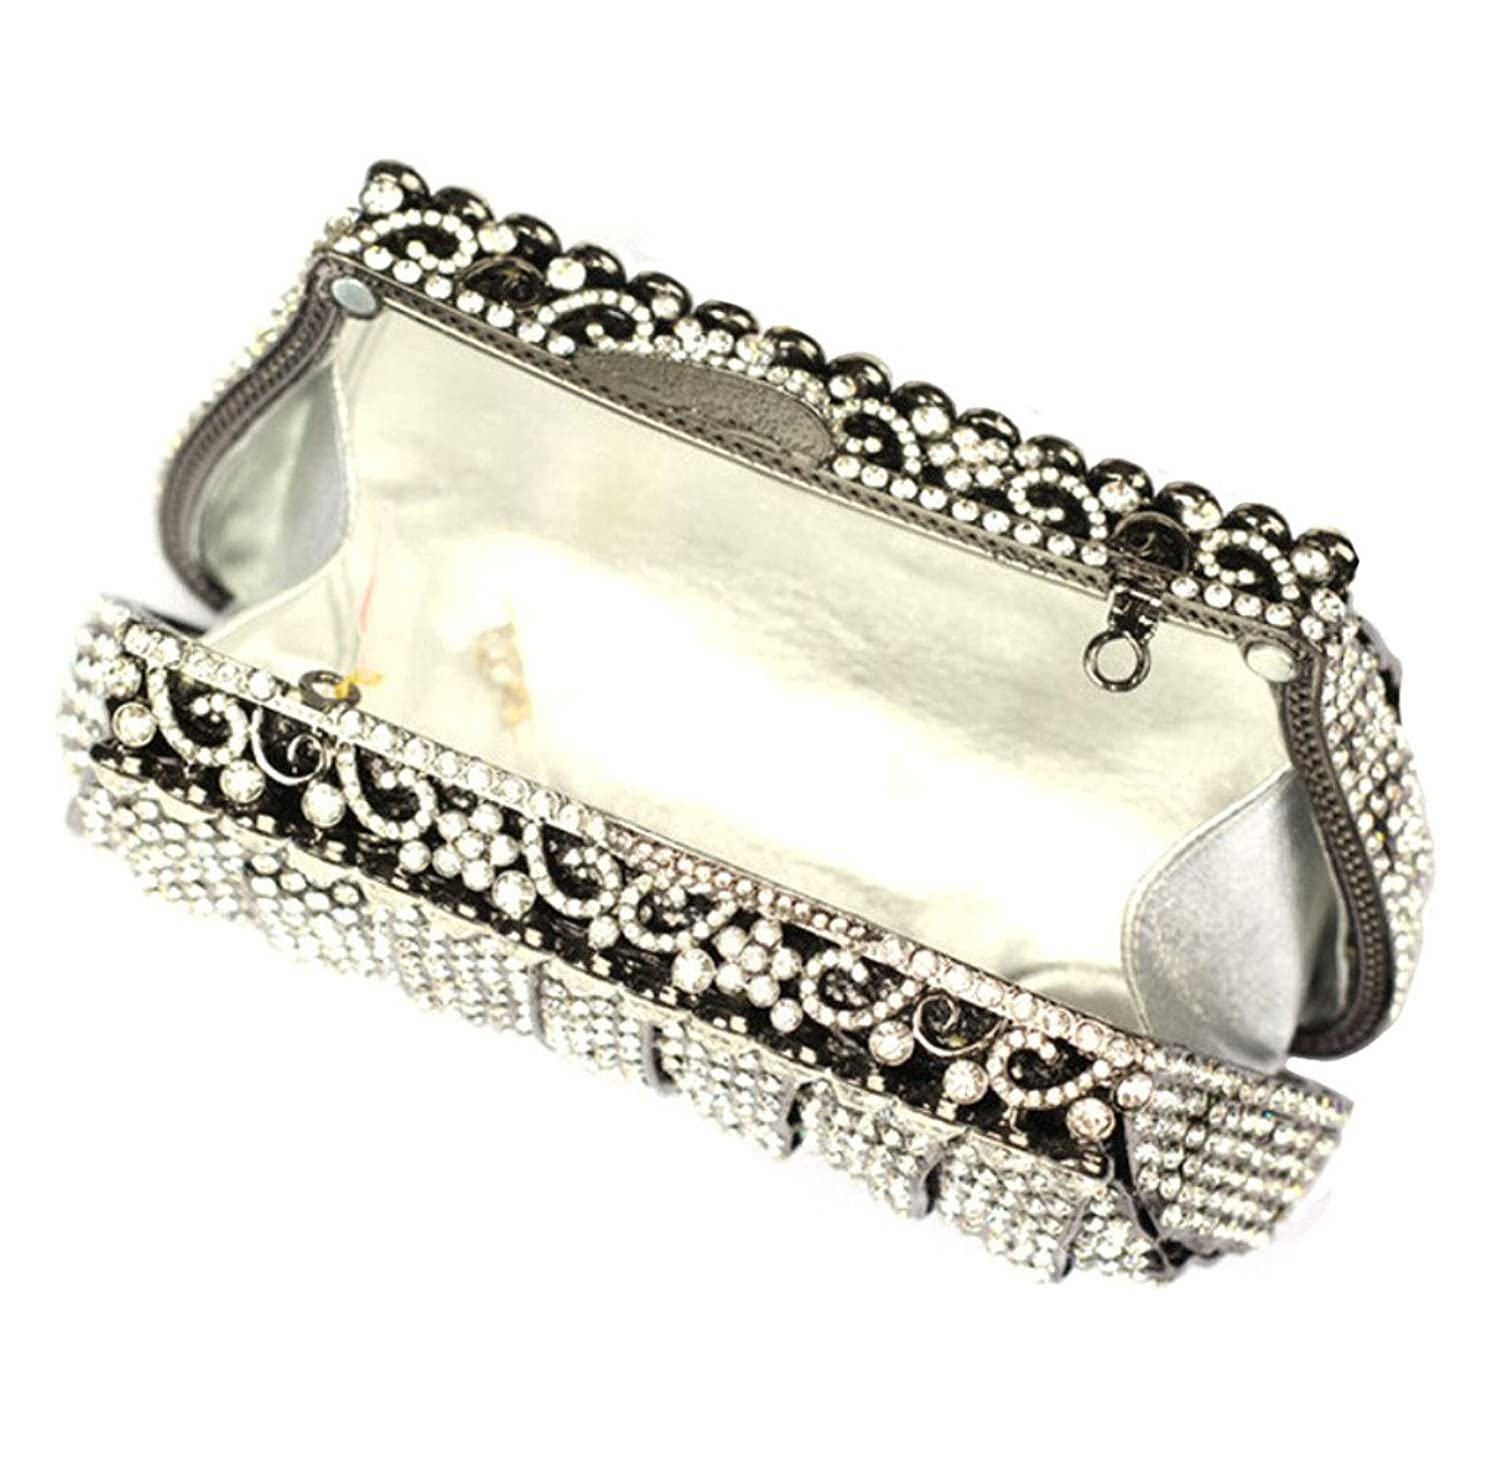 Abless Elegant Purses for Girls Rhinestone Crystal Clutch Evening Bag